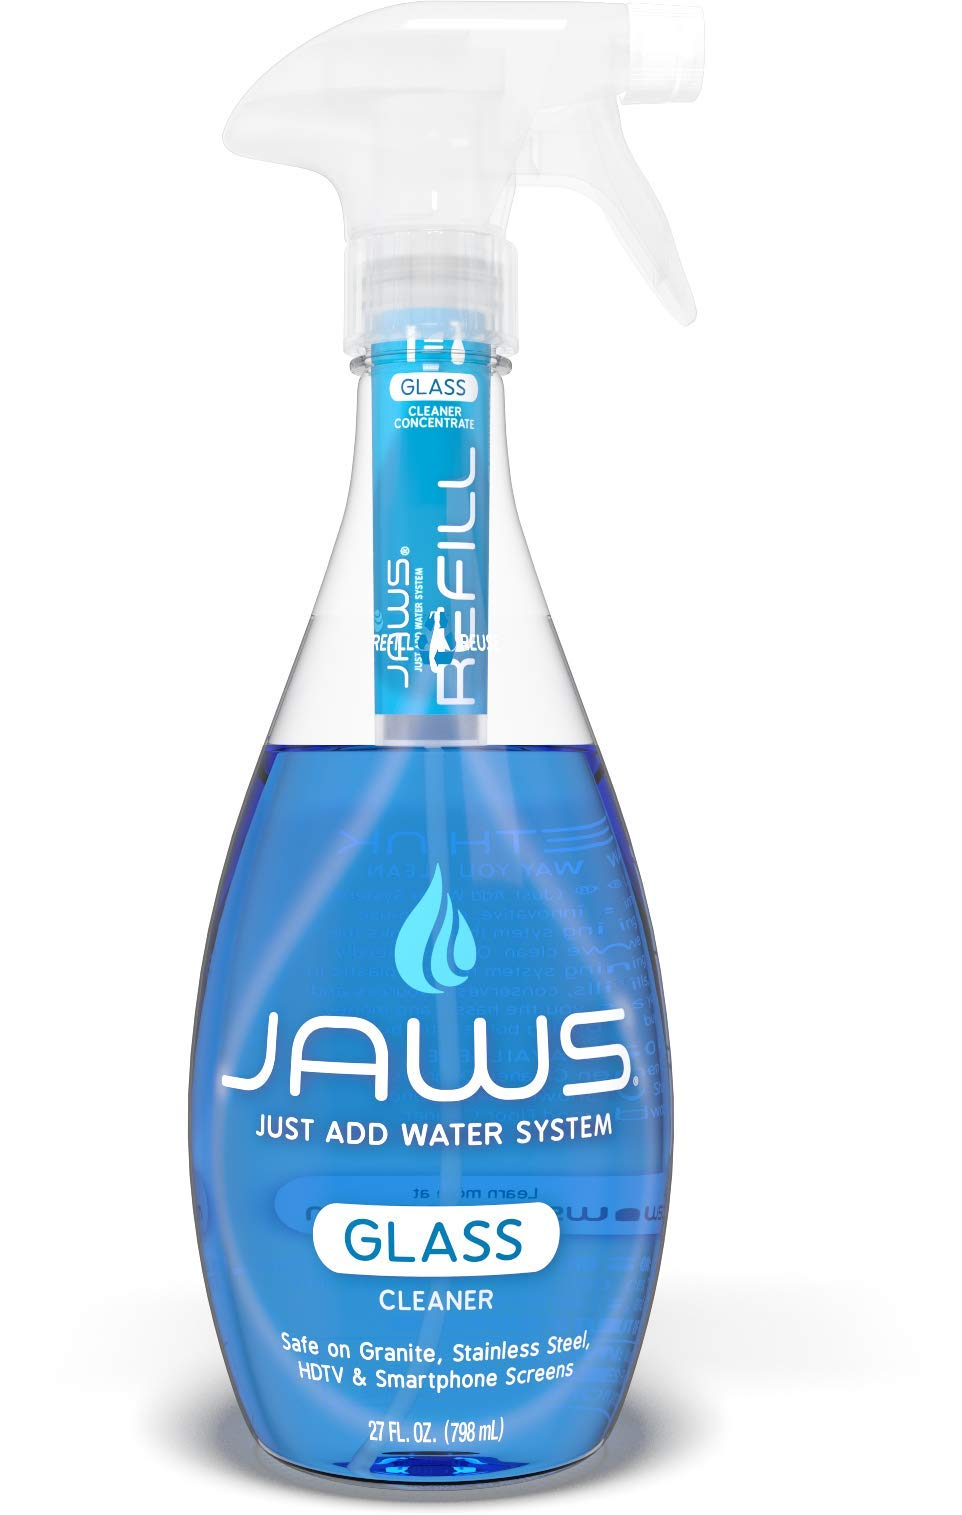 JAWS Glass Cleaner Refill Pods. Box of 24. Non-toxic and Eco-friendly Cleaning Products. by JAWS (Image #3)